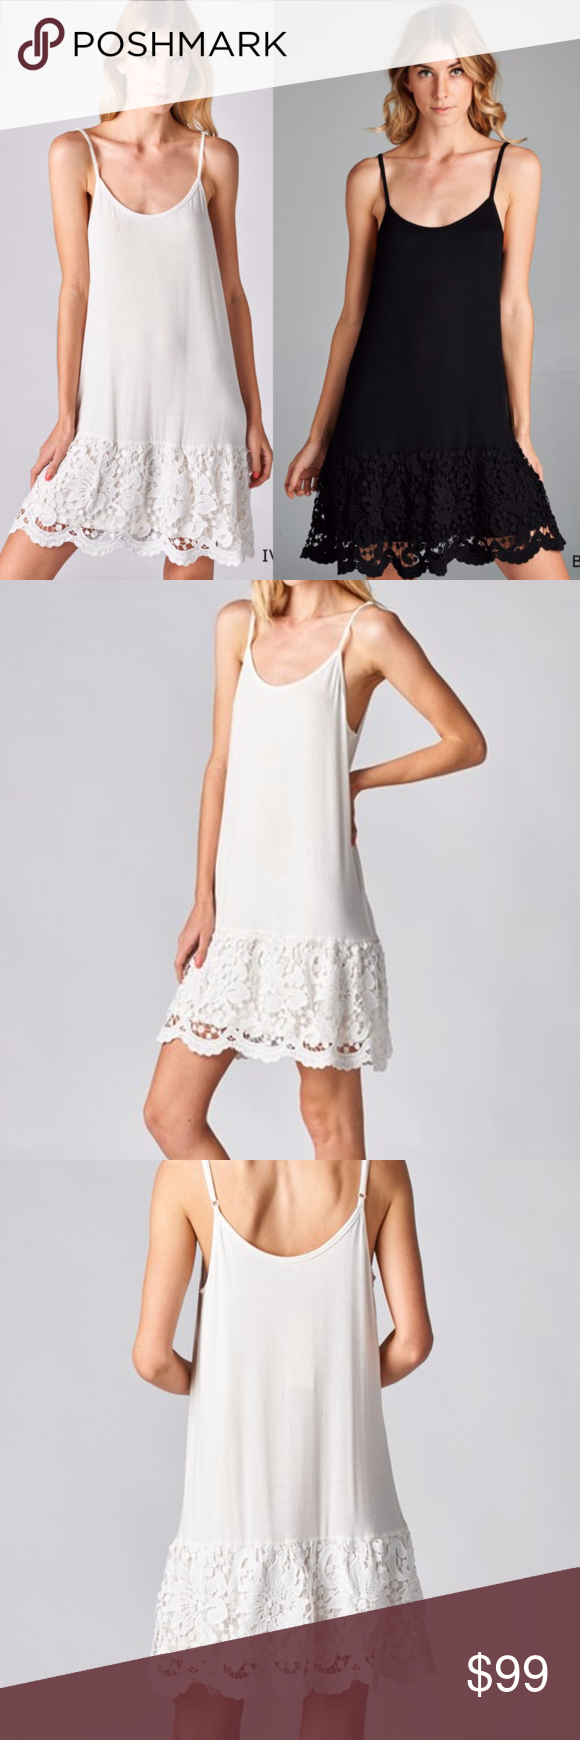 Scalloped lace dress extenders